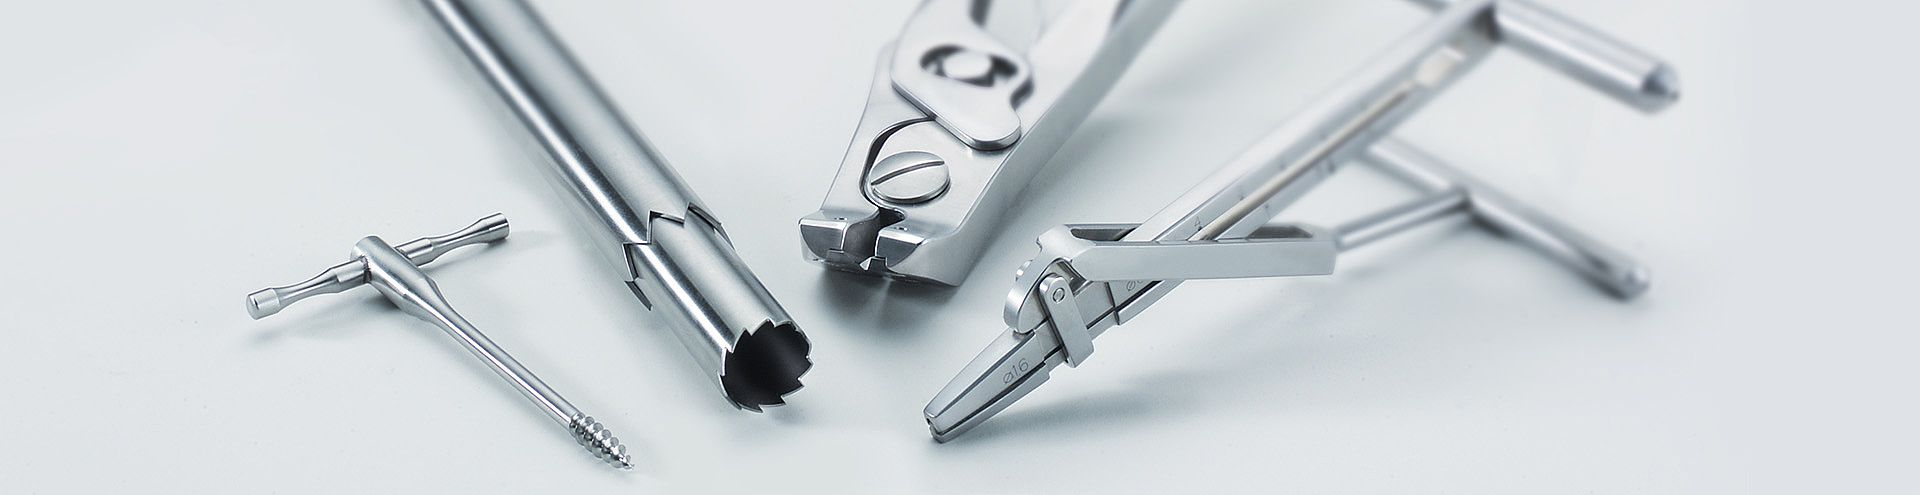 Surgical instruments for traumatology